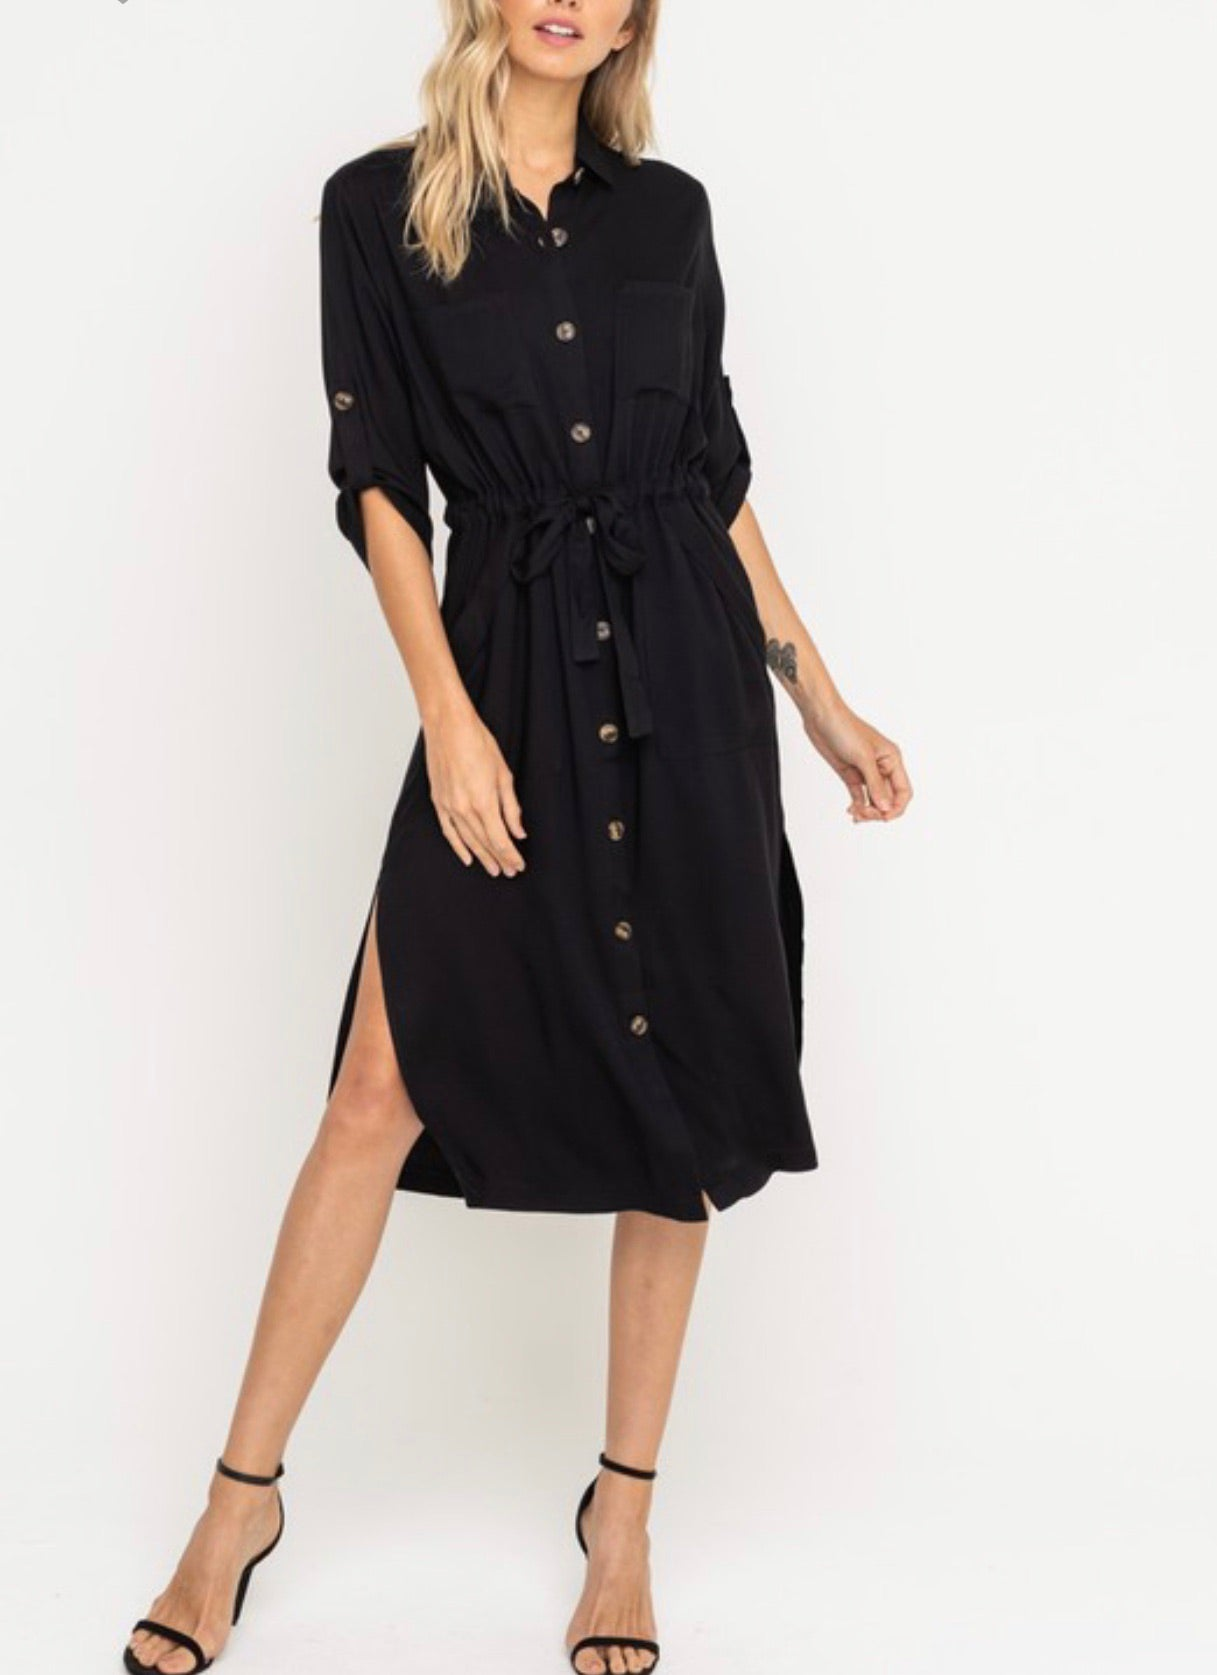 Southern Black Shirt Dress midi style with front tie